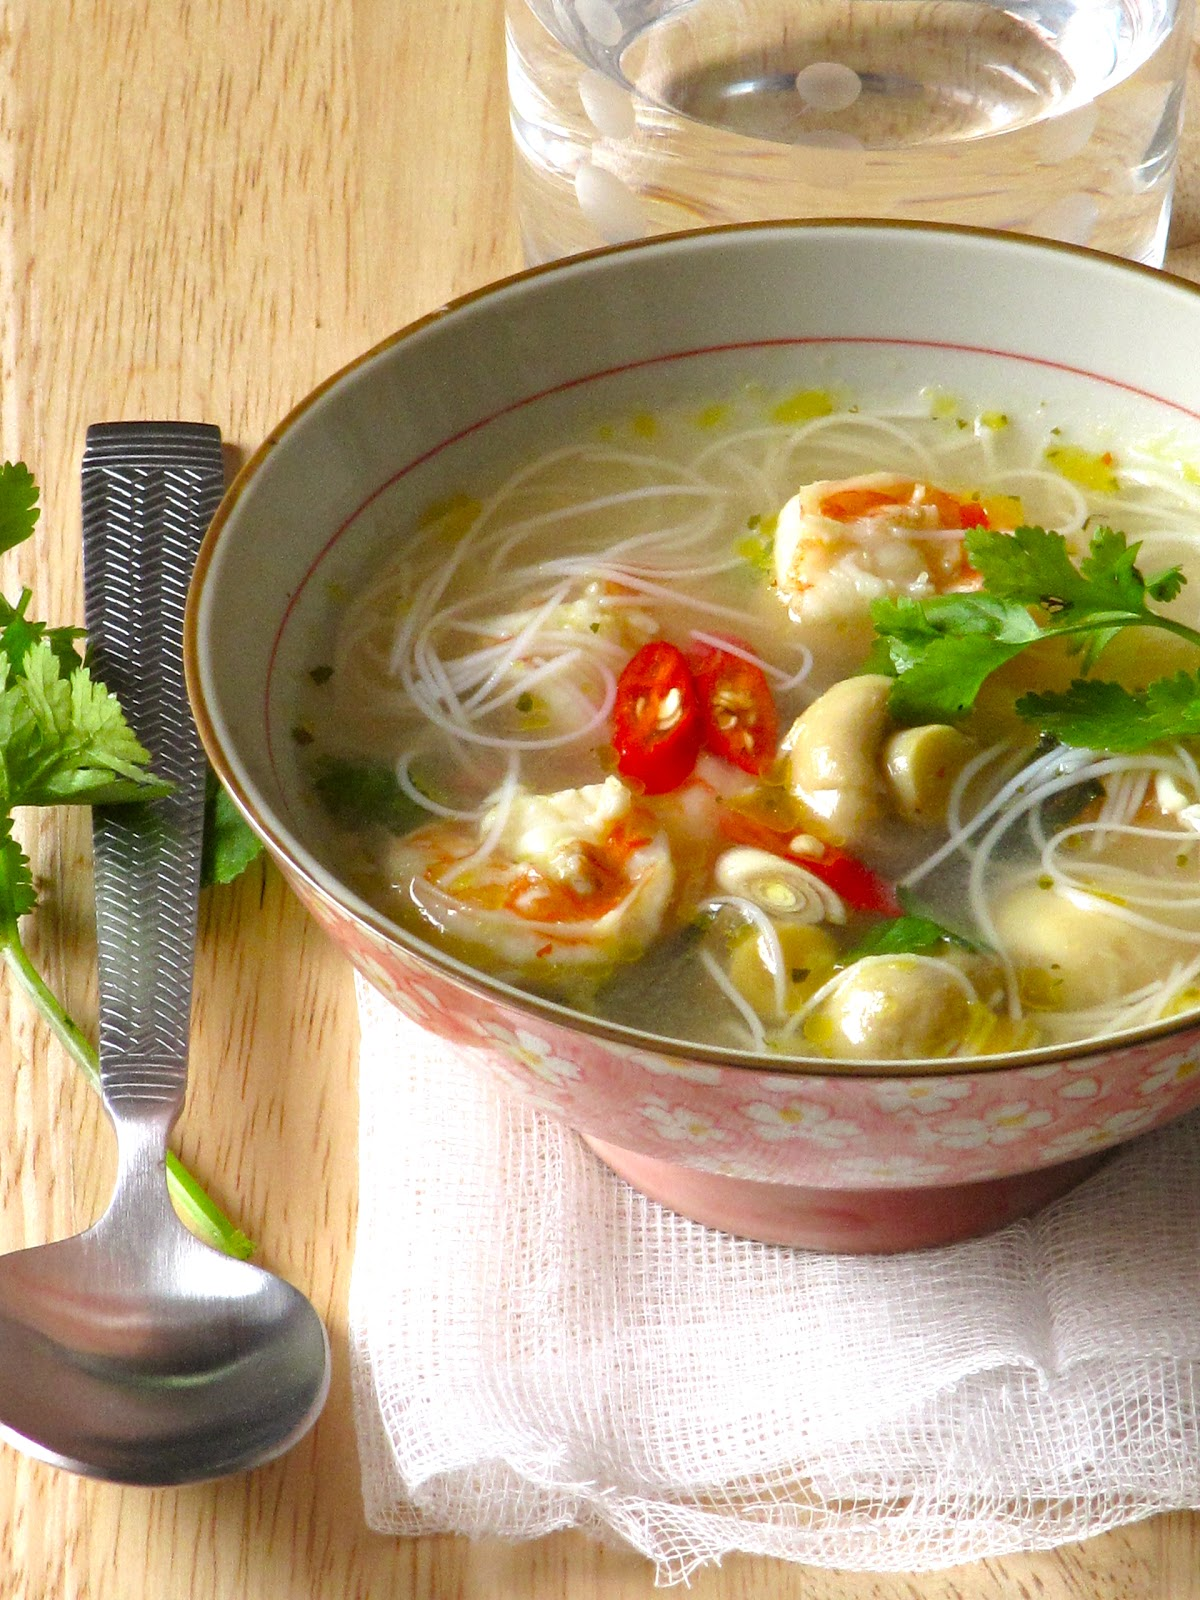 Plateful: Tom yum goong – Thai hot and sour noodle soup with shrimp